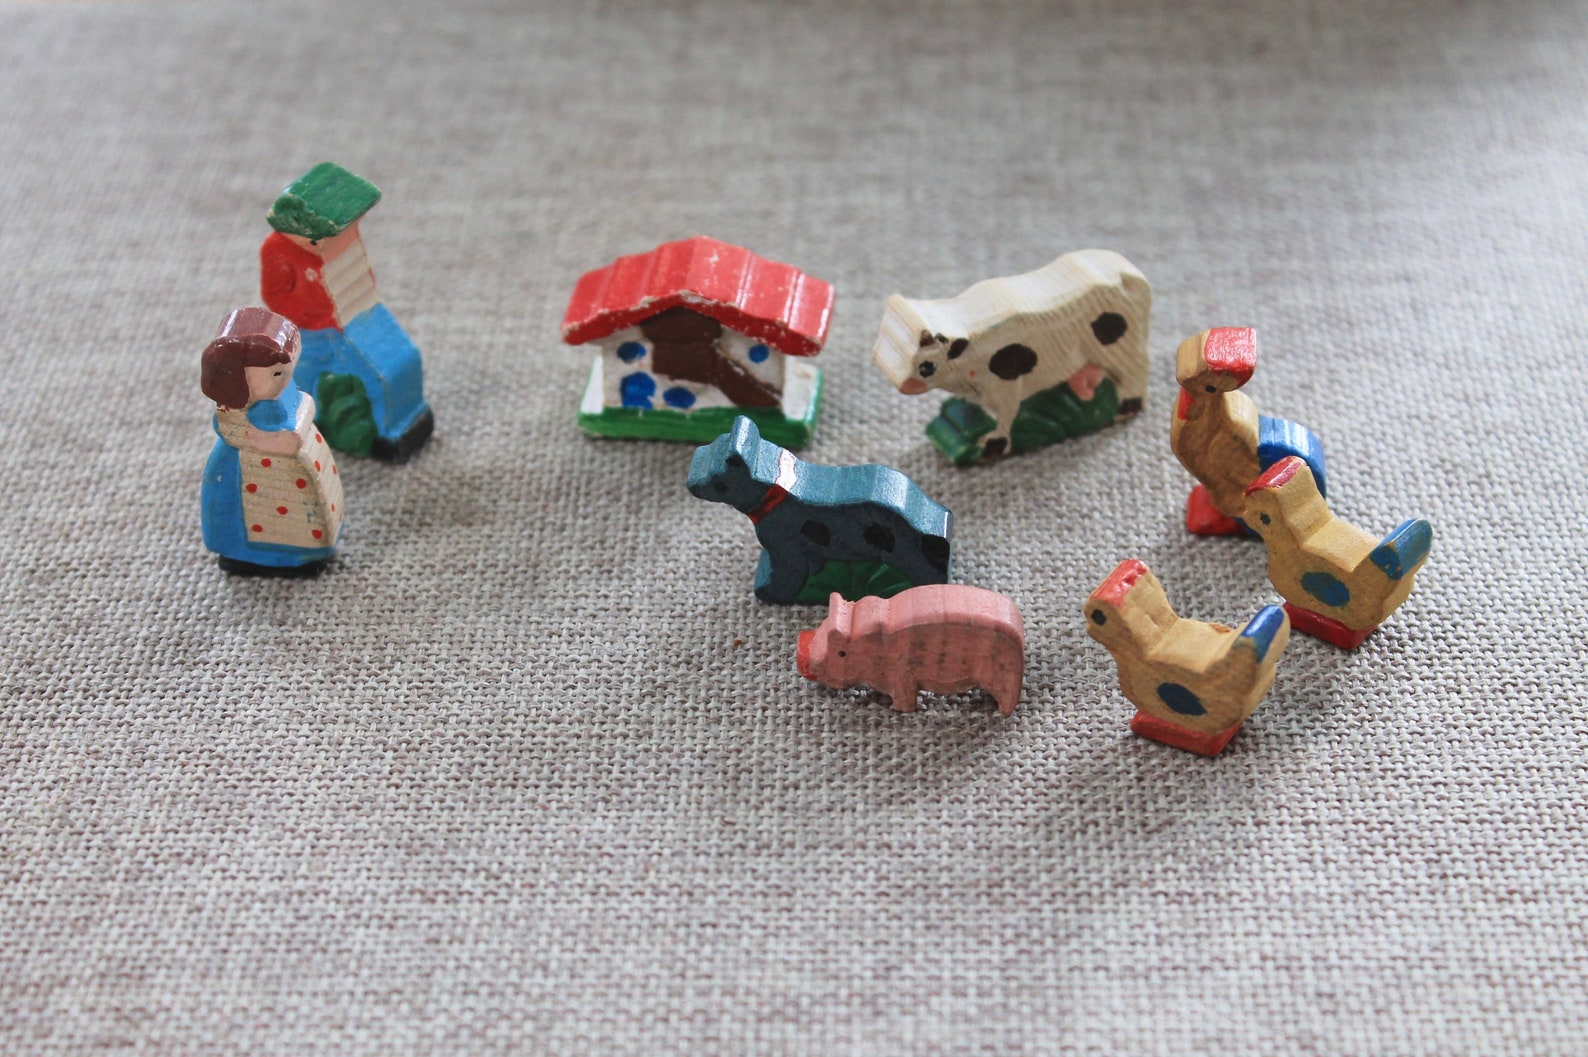 Vintage Unique Miniature Wooden German Erzgebirge People/Animals, Vintage Small Wooden Miniature Farm Figures